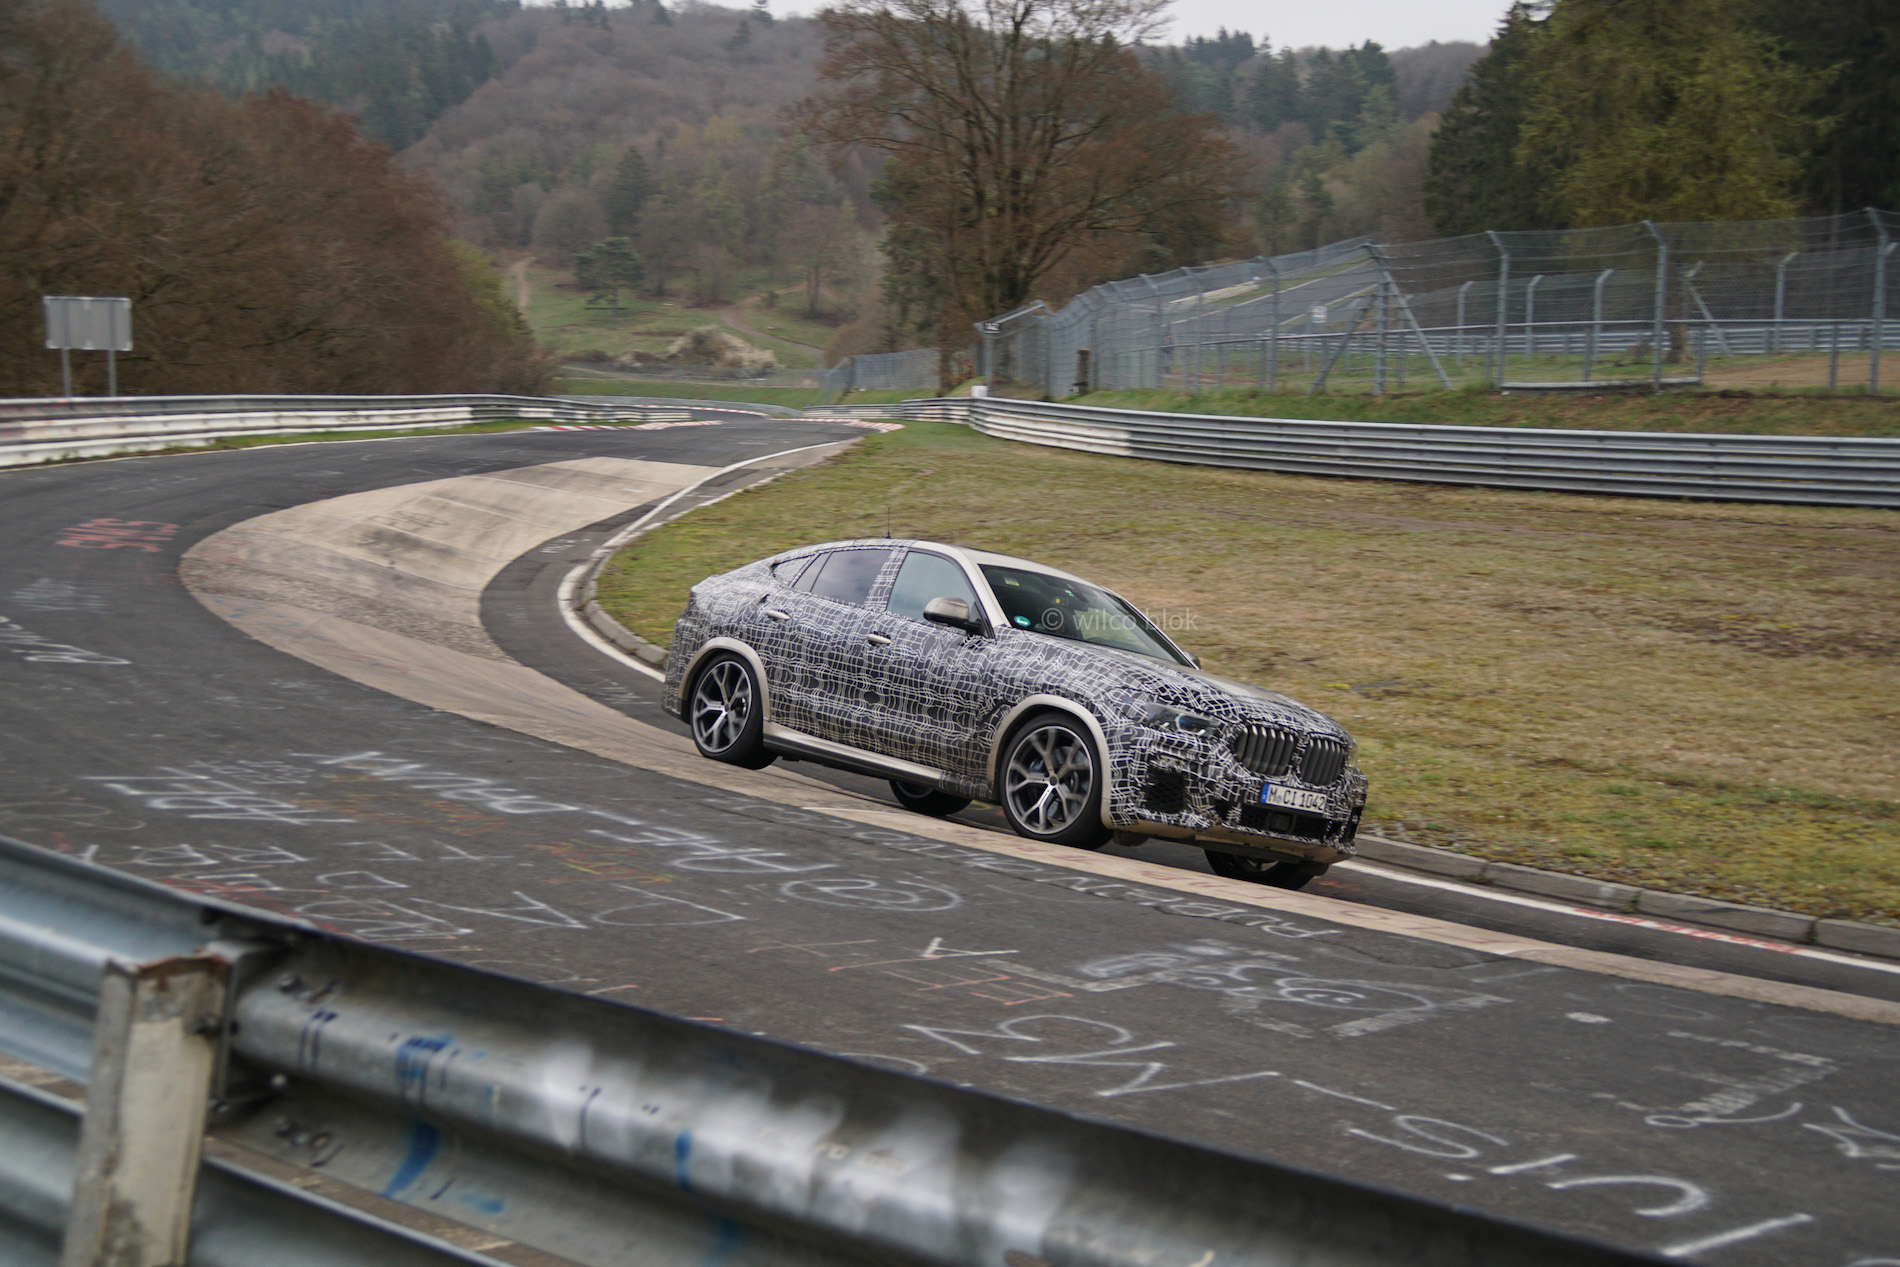 Testing at Nurburgring: The 2020 BMW X6 Sports Activity Coupe